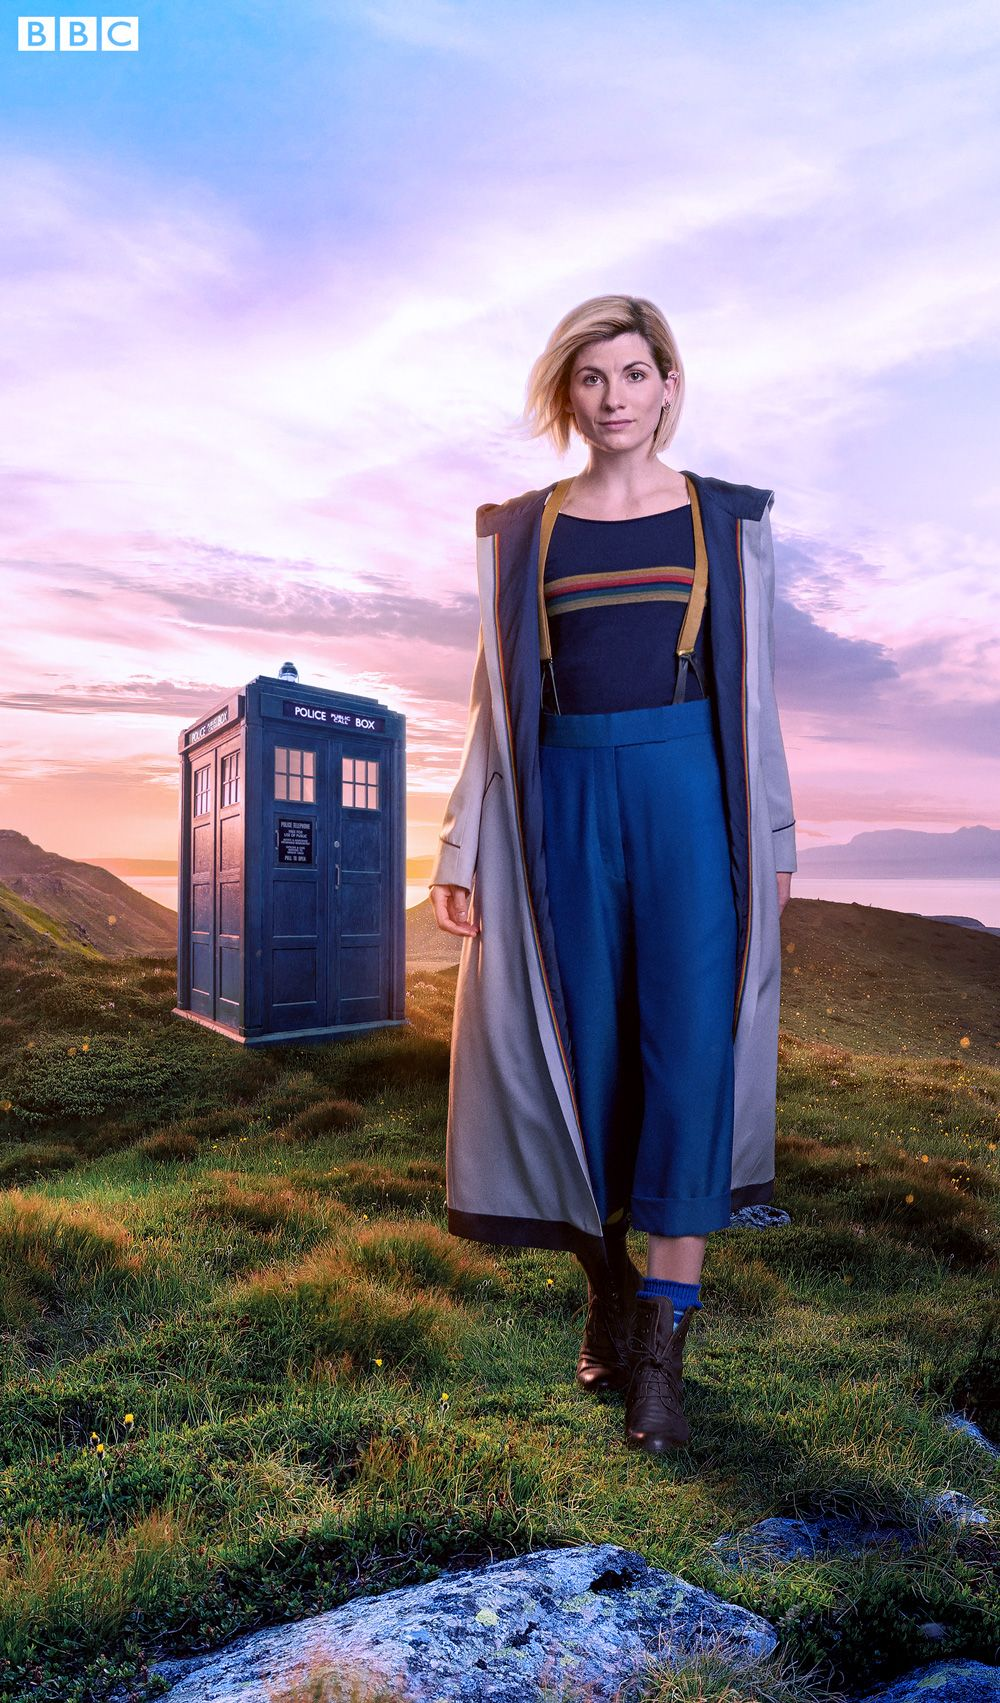 _jodie-whittaker-as-the-doctor-bbclogo_doctor-who_s11_costume-reveal.jpg